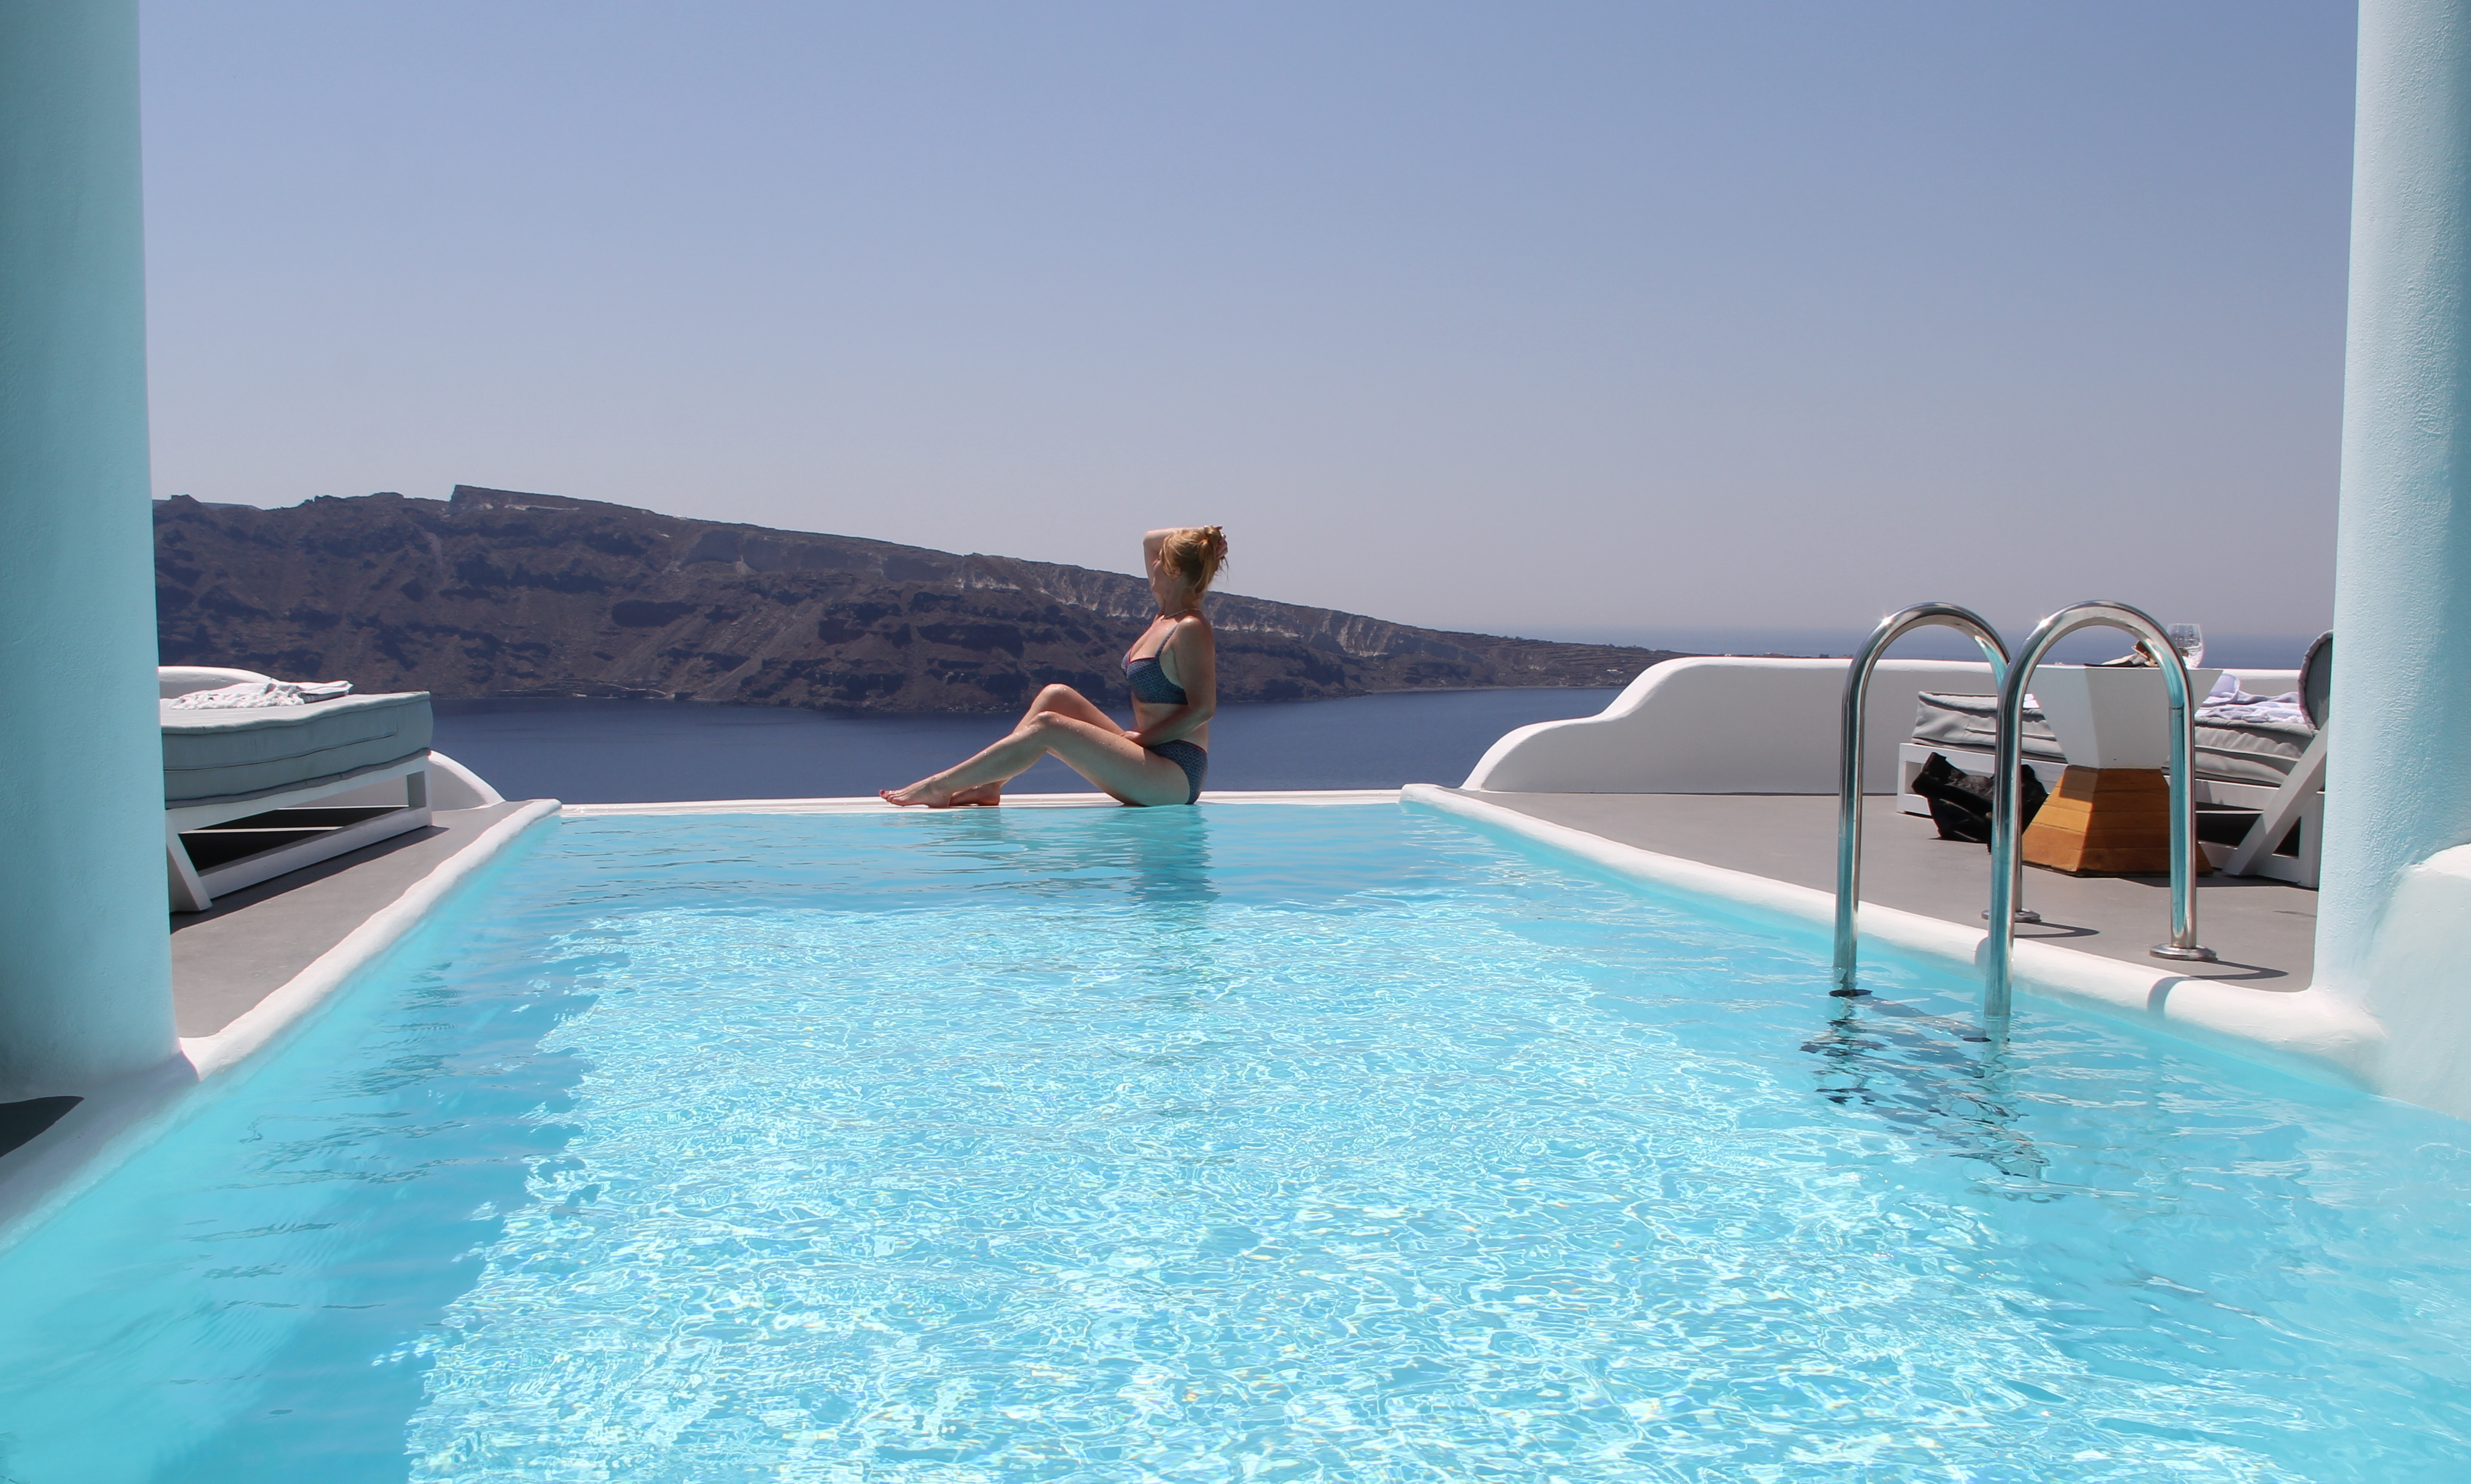 Santorini Prive Zwembad Balkon Charisma Suites Voyages And More